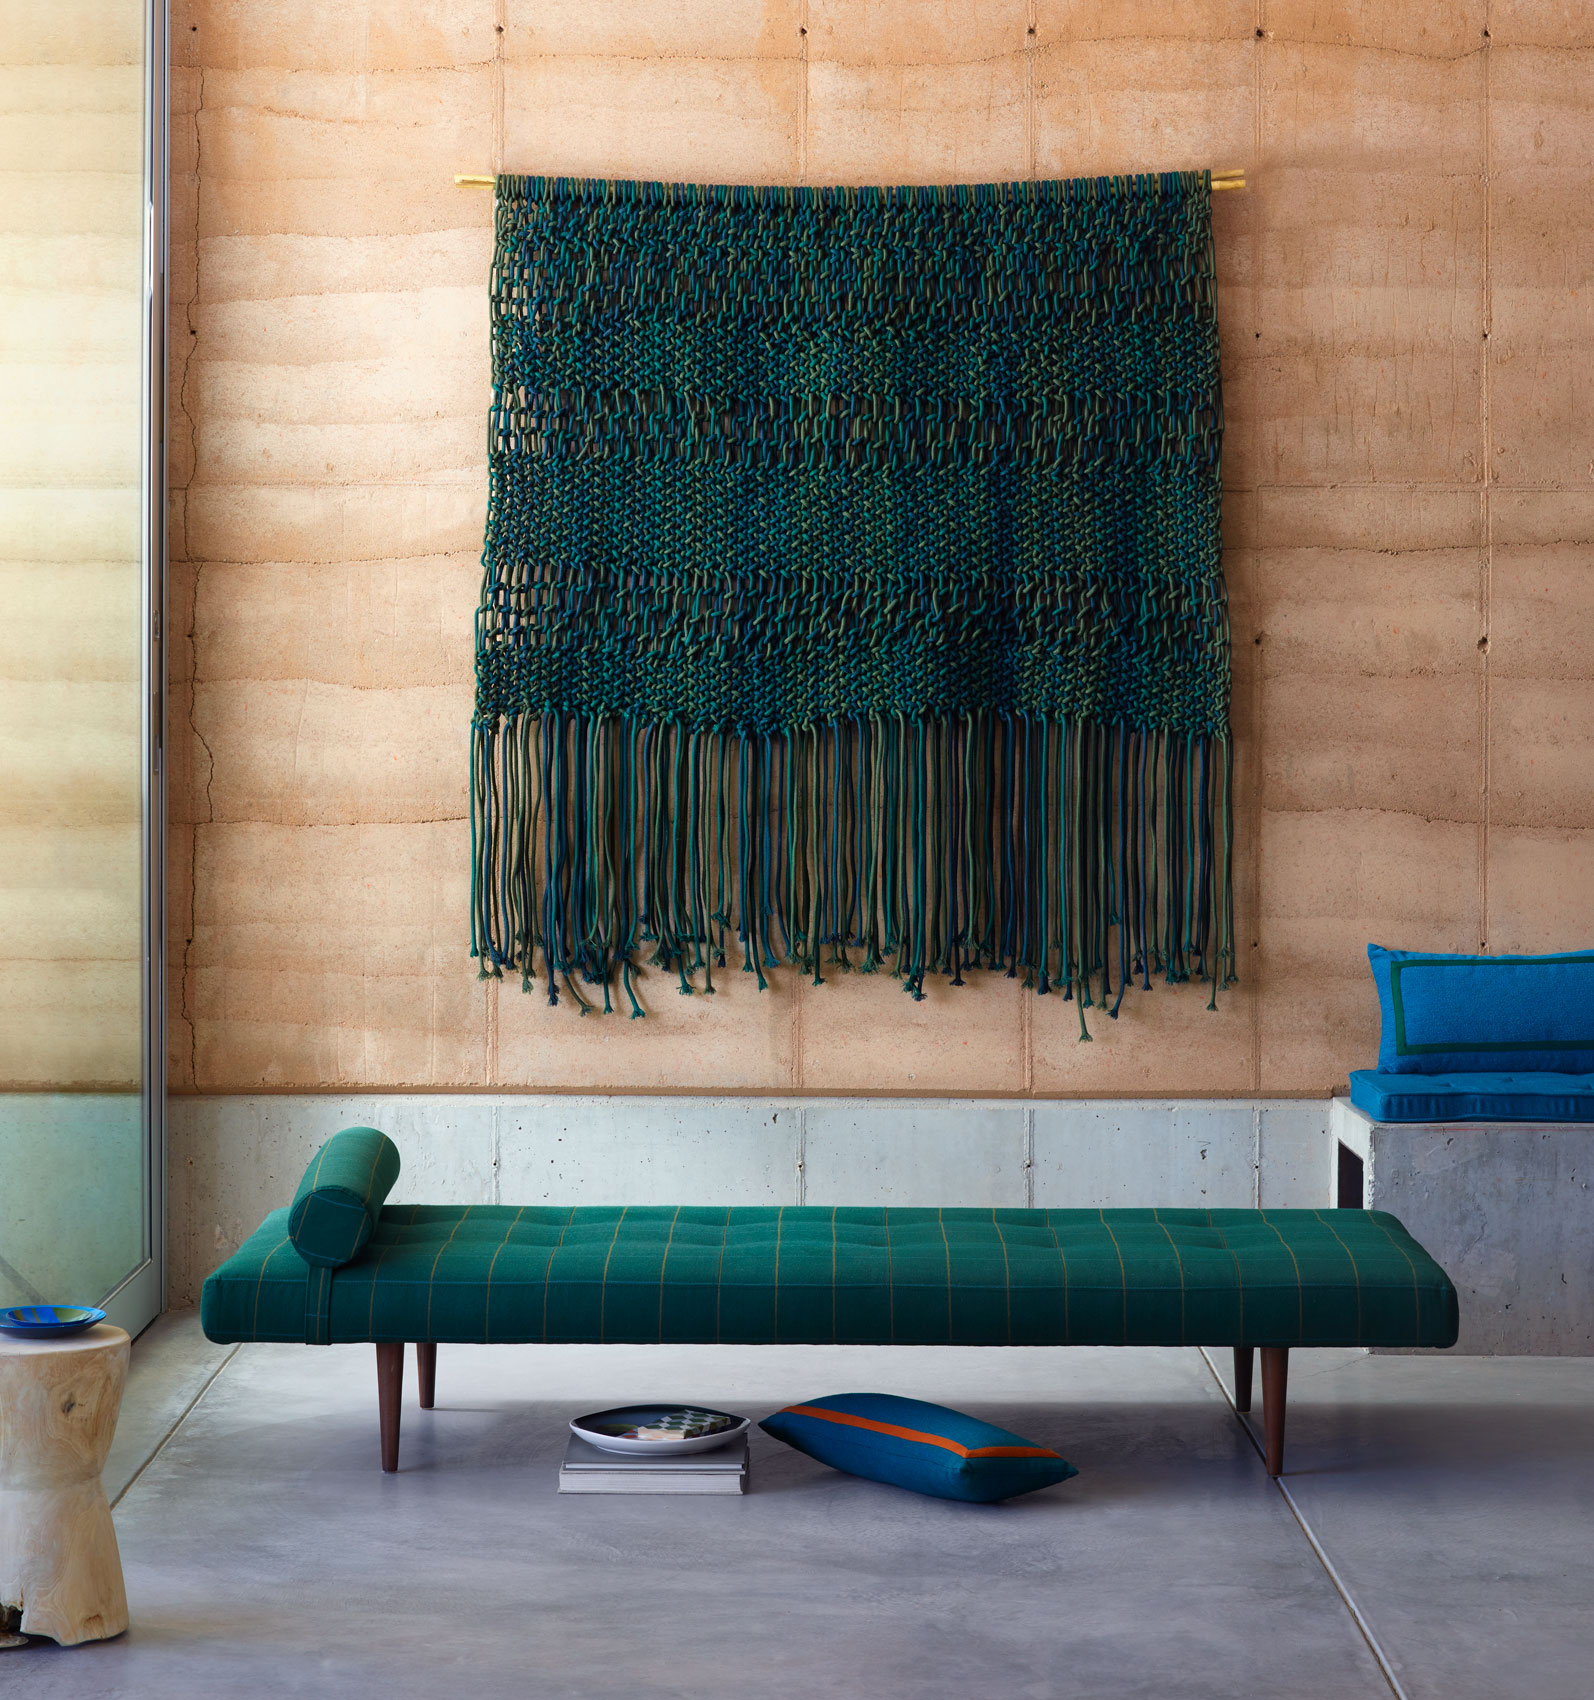 Spaces: Bench and Macrame